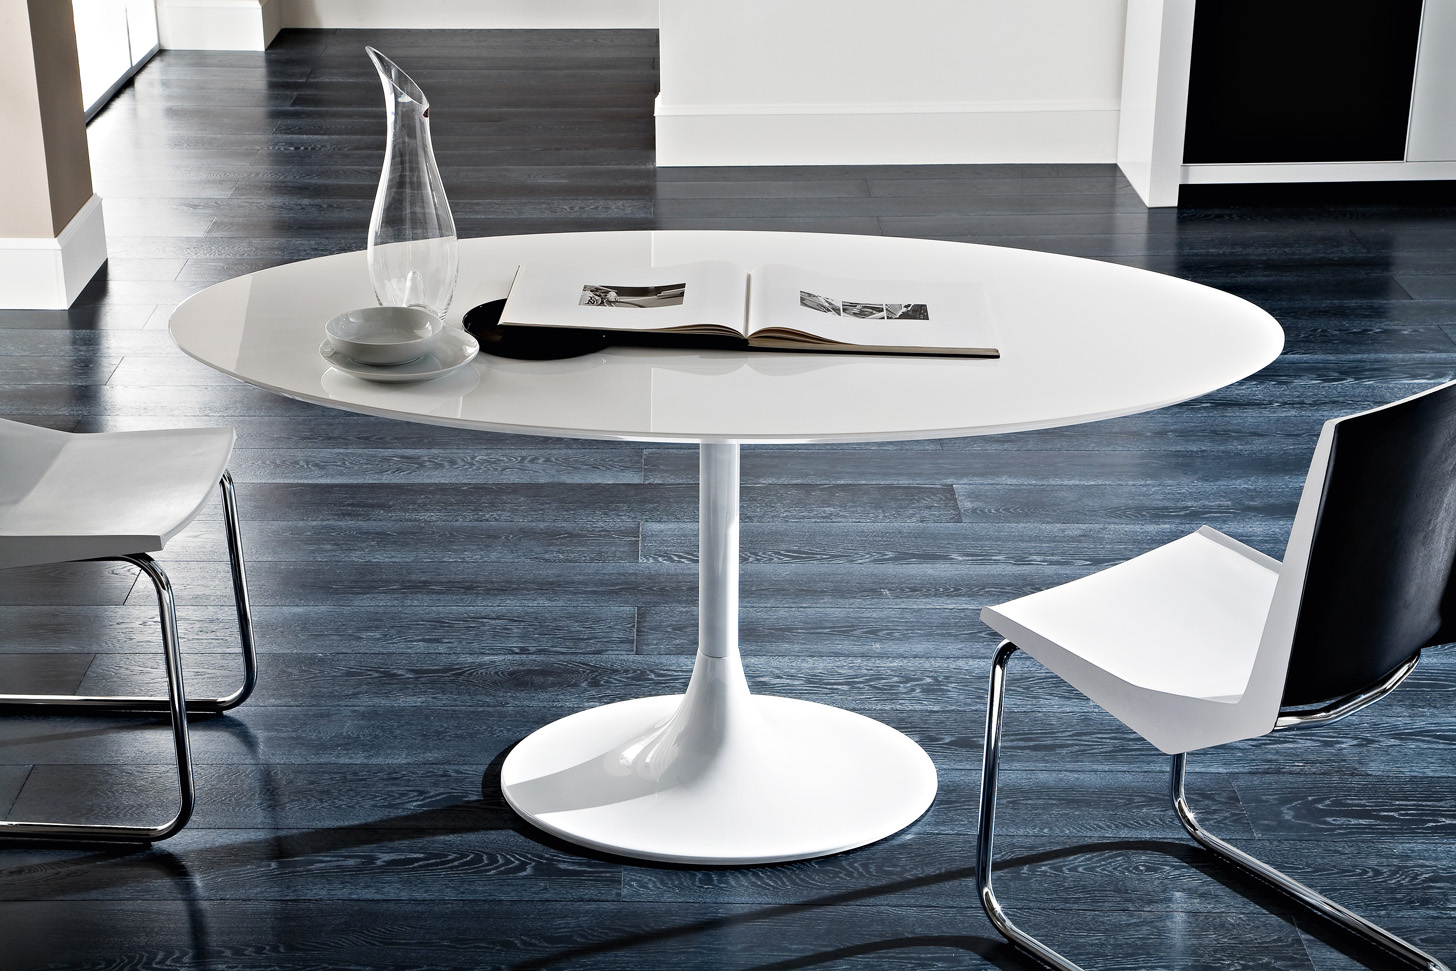 choosing a dining table and chairs for a small home la furniture